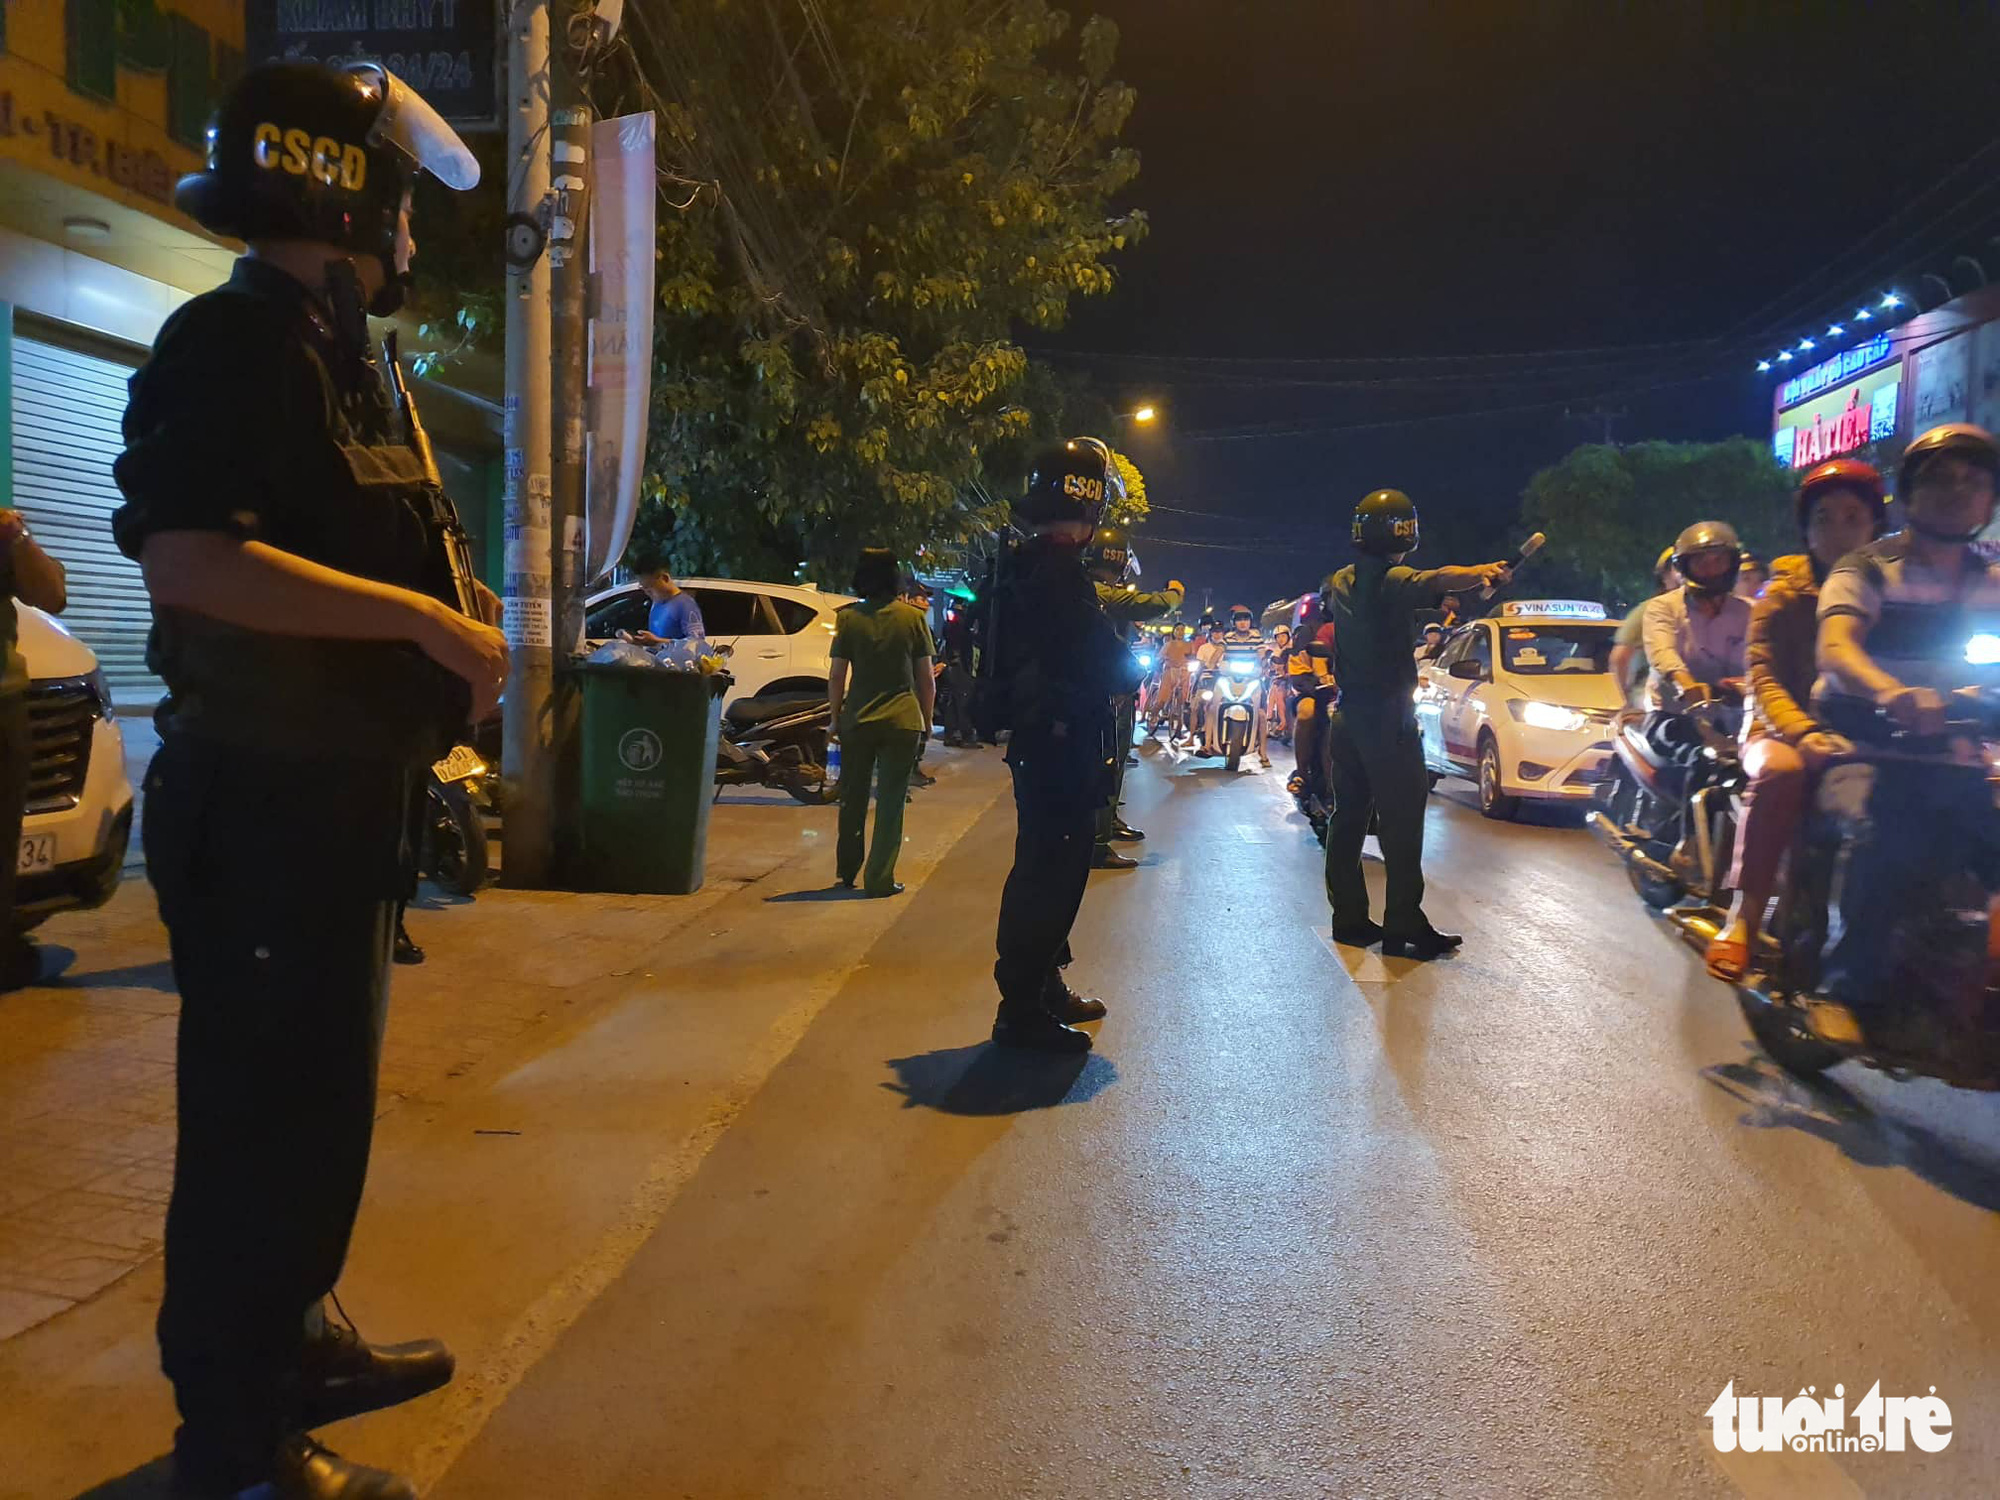 Officers control the traffic in front of the hospital while the apprehension takes place. Photo: S.D / Tuoi Tre